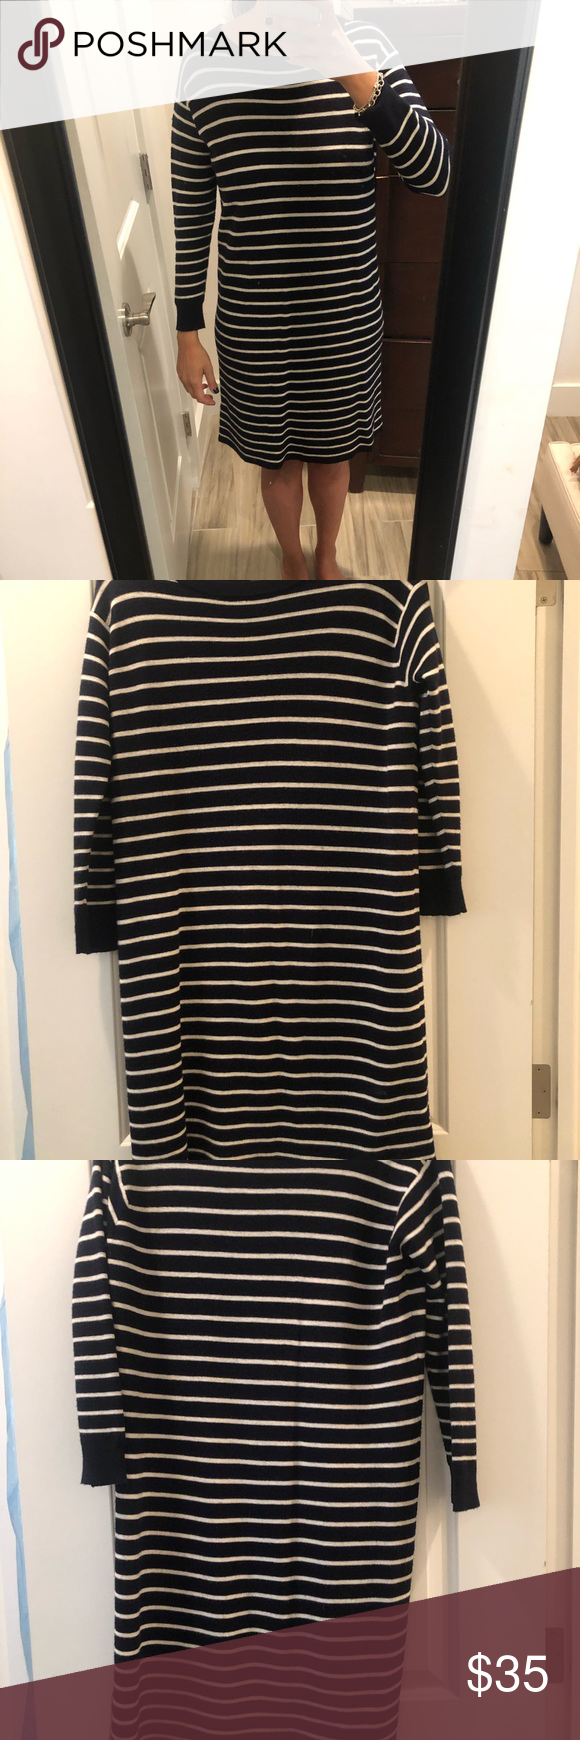 JCrew sweater dress Navy and white striped, knee length J. Crew Dresses Midi #fashiondresses